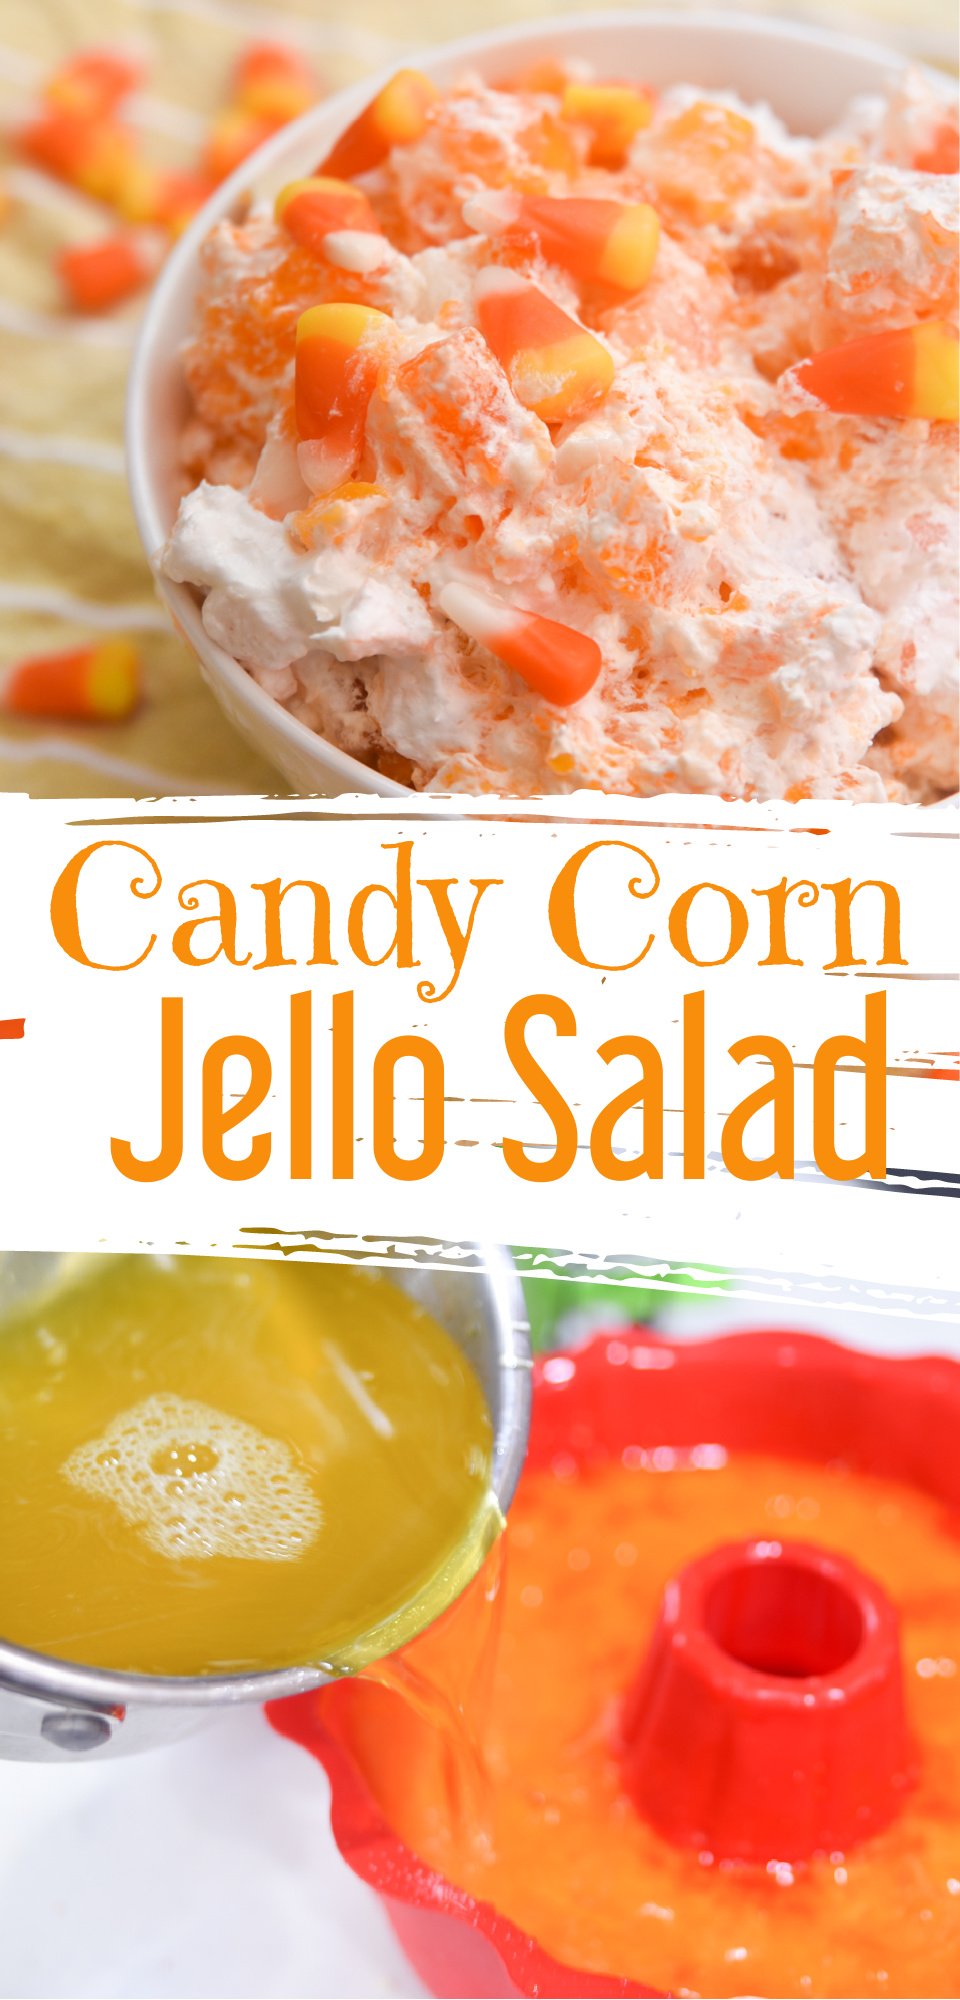 Candy Corn Jello Salad (perfect for Halloween!) via @simplysidedishes89